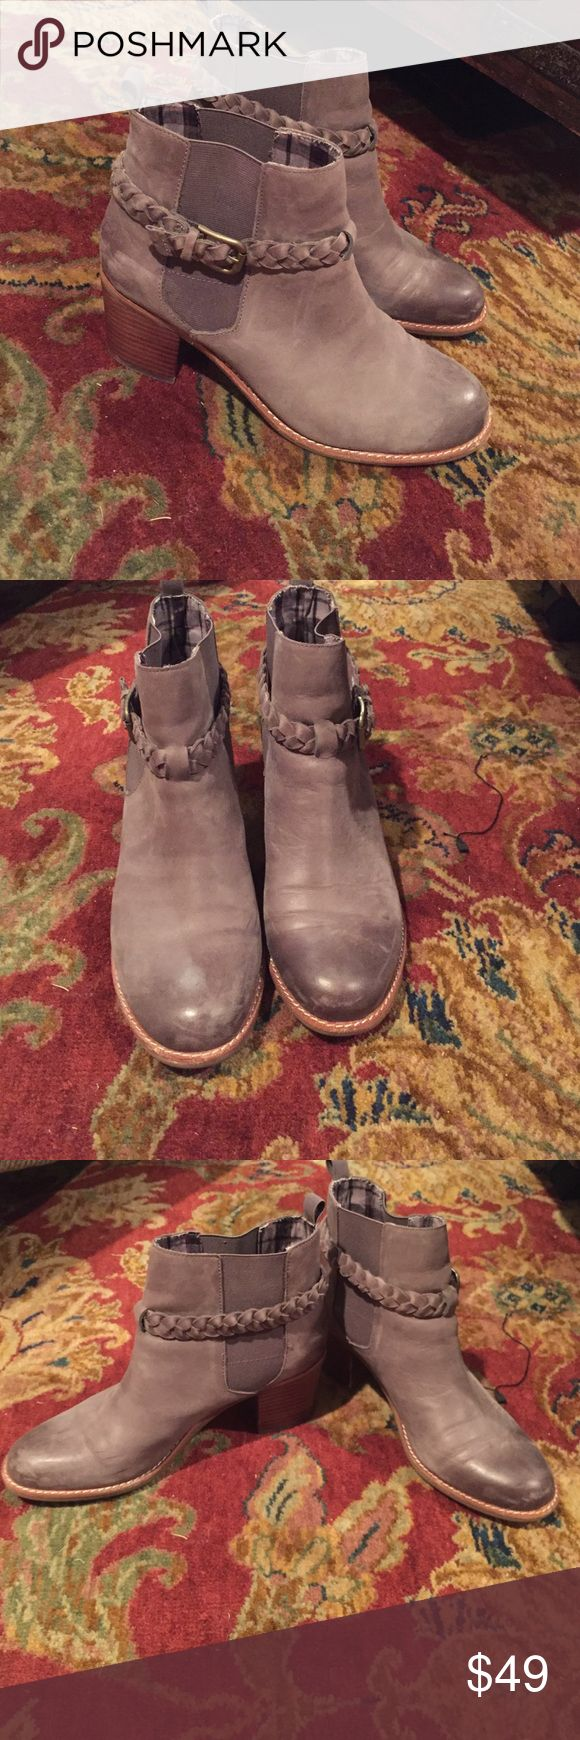 Women's Sperry Topsider Boots Women's Sperry Topsider Boots. Gently used. Lots of life left! Great for winter. Cute and comfortable! Sperry Top-Sider Shoes Ankle Boots & Booties